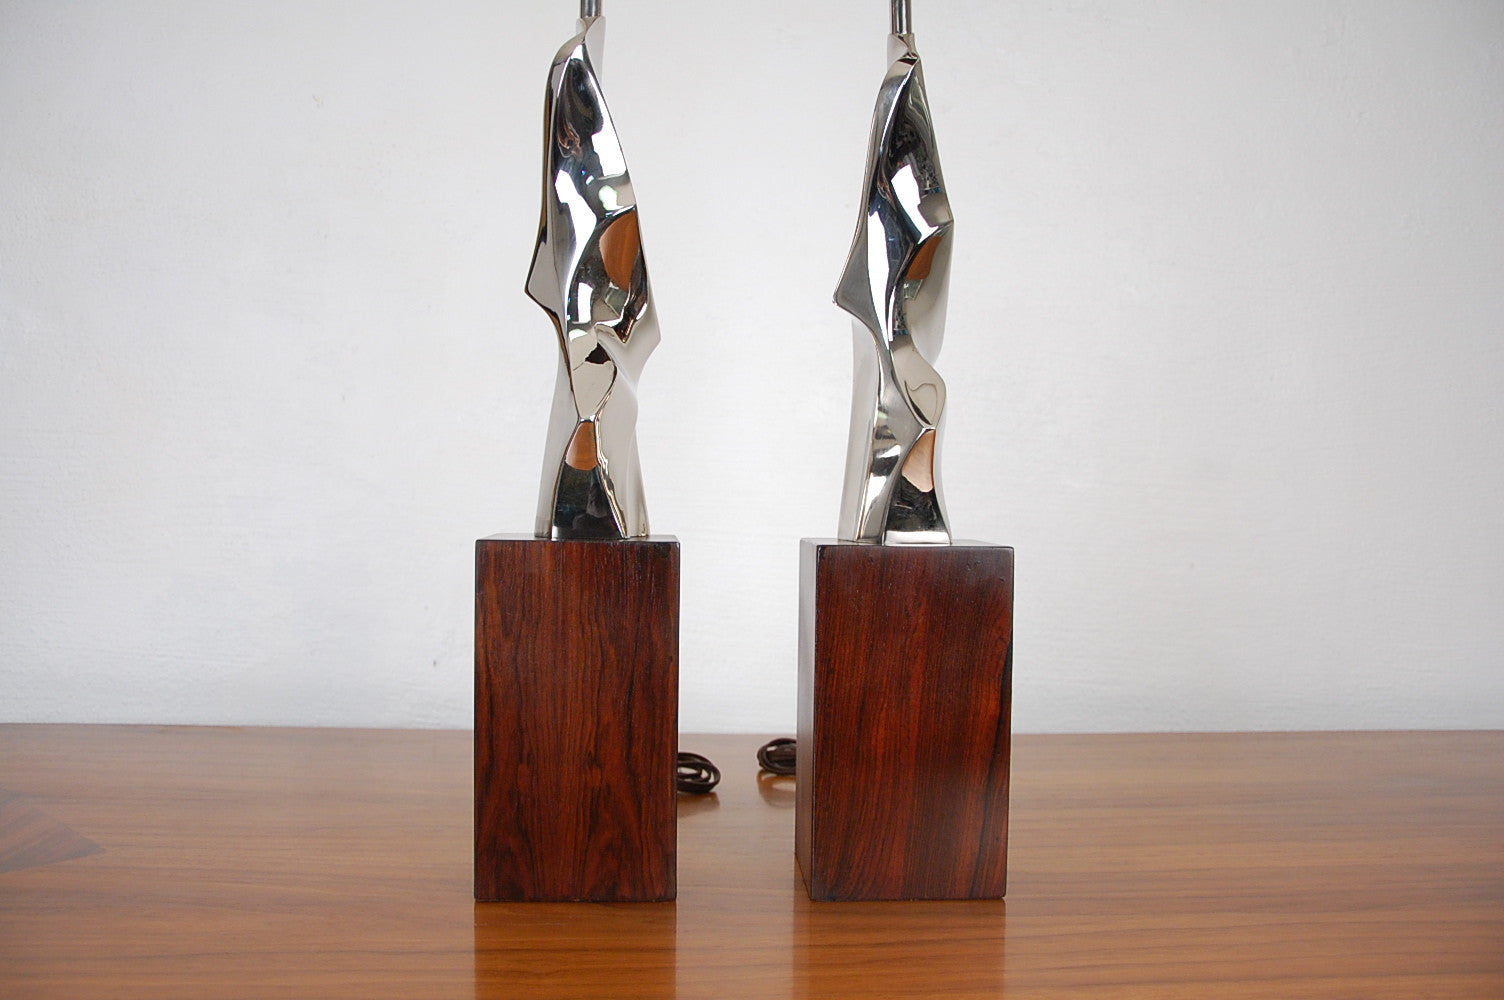 Laurel Sculptural Chromed Table Lamps on Rosewood Base by Maurizio Tempestini